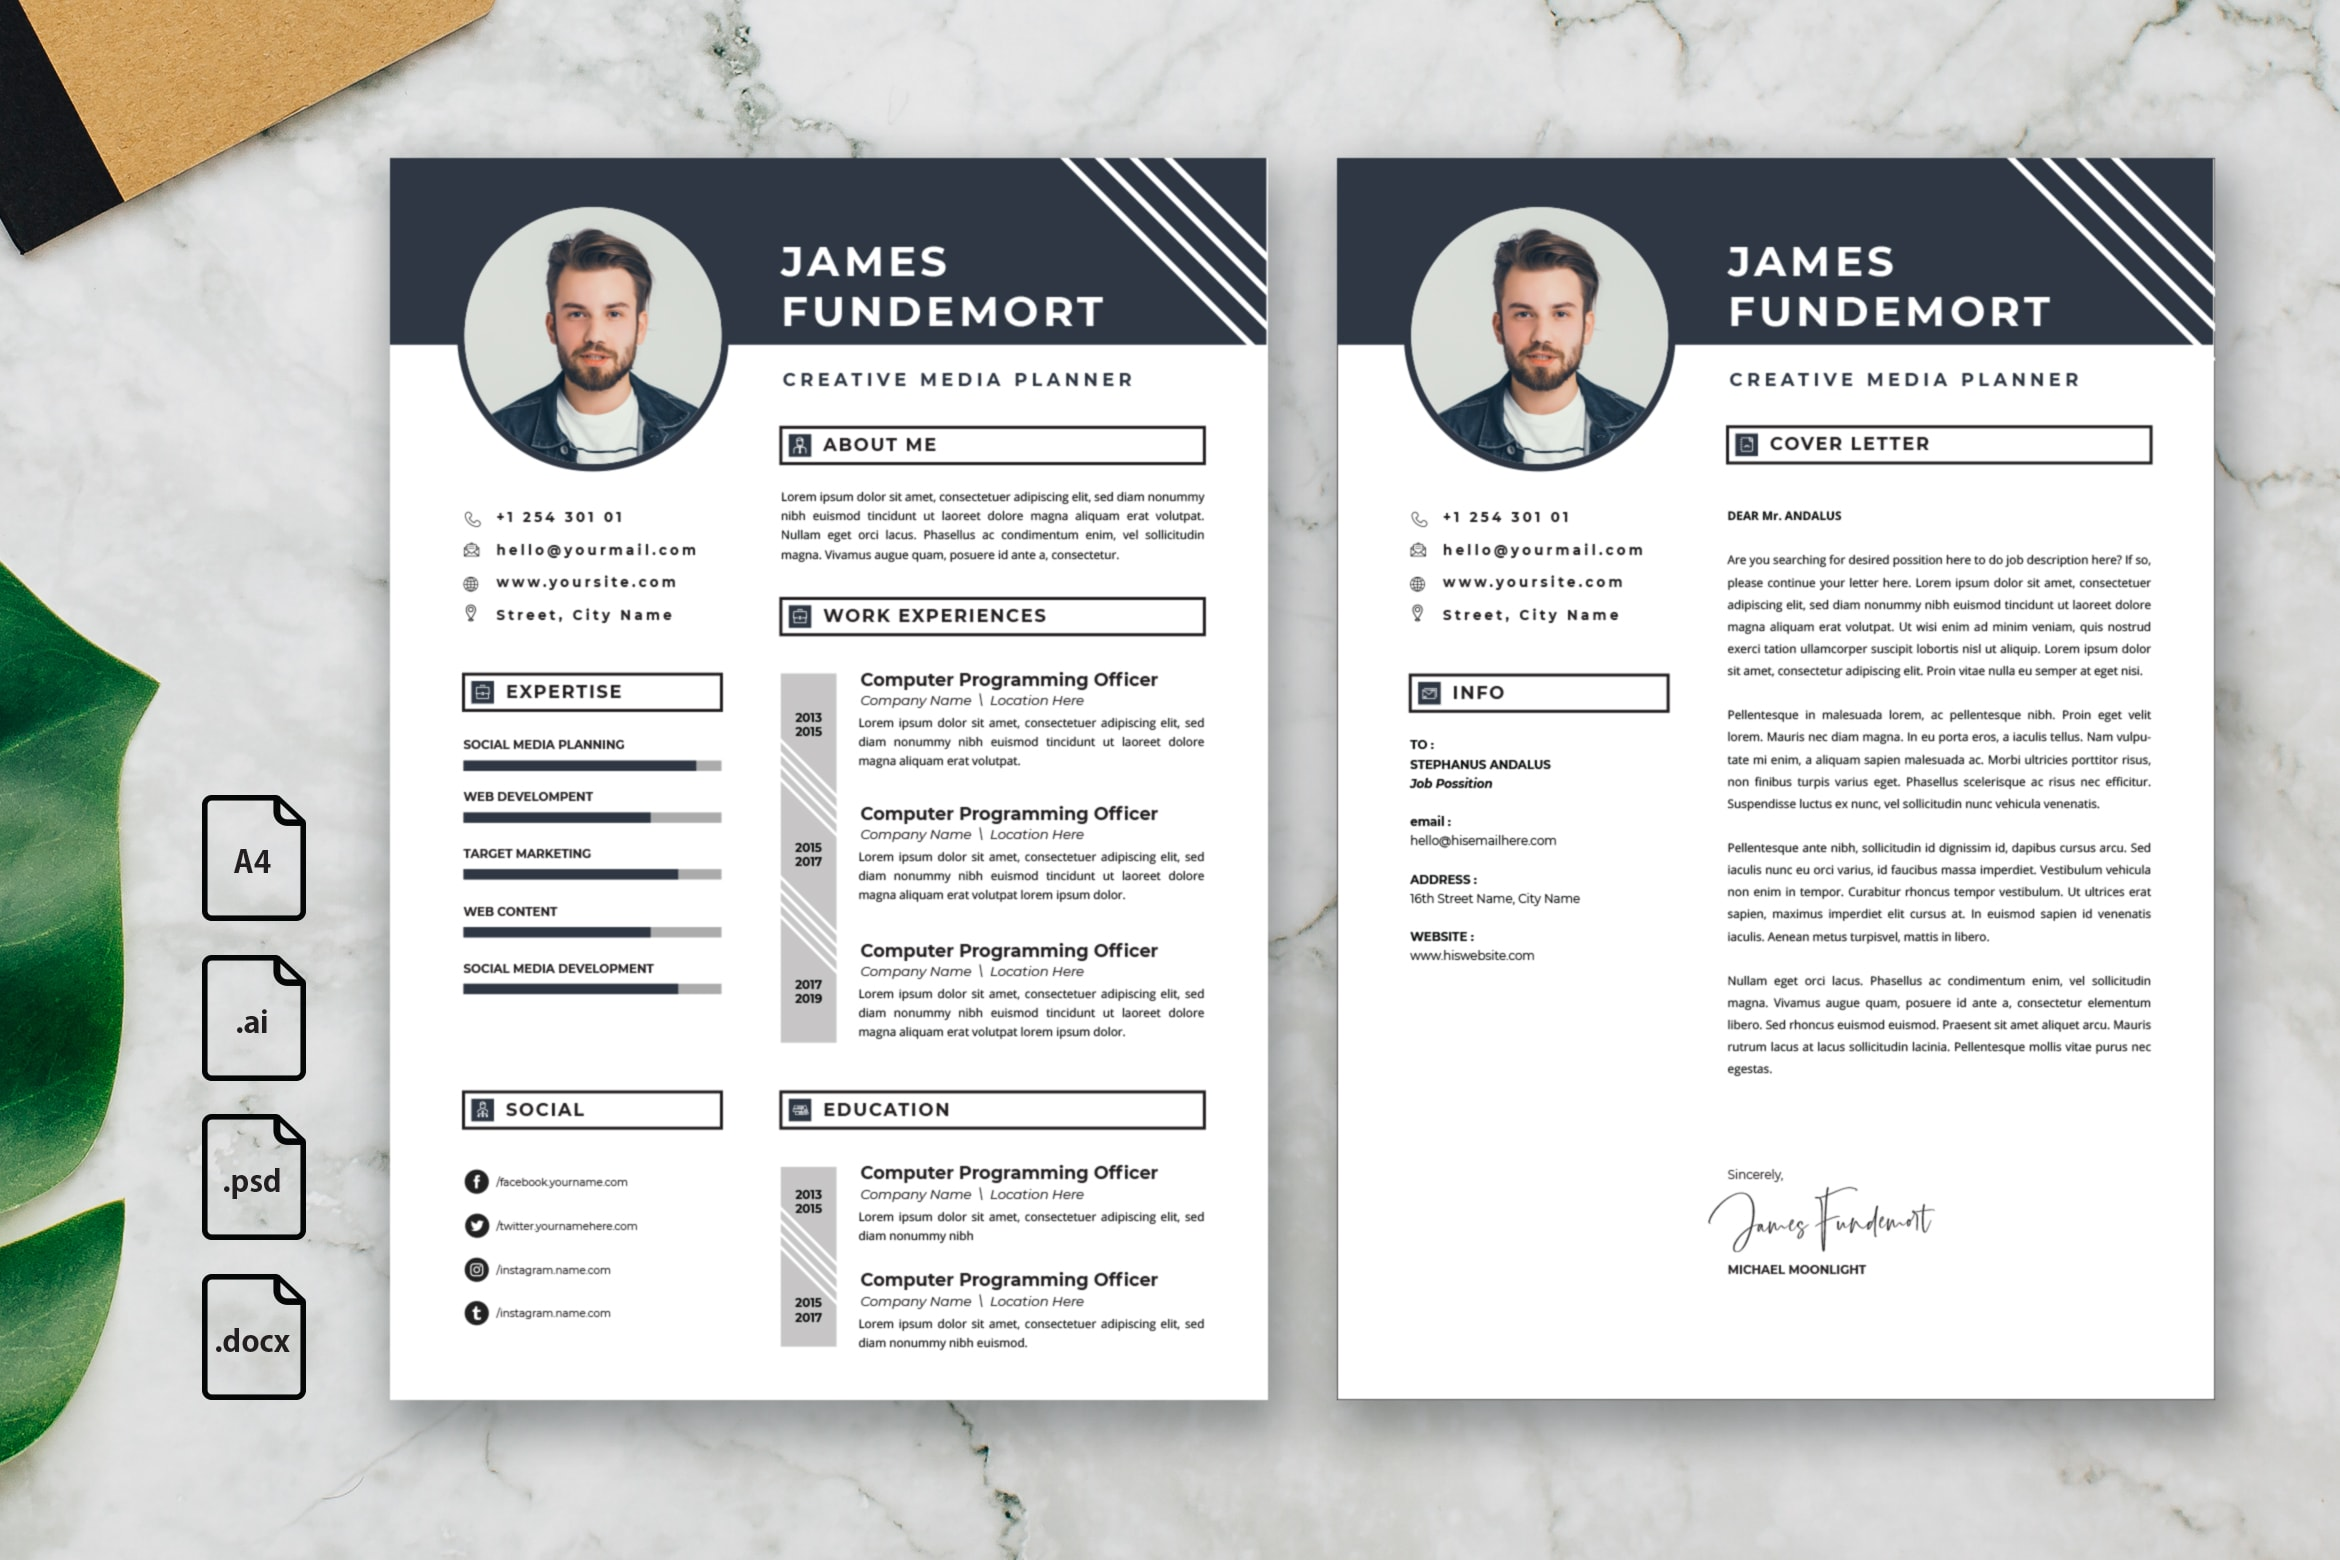 CV Resume - Creative Media Planner Profile